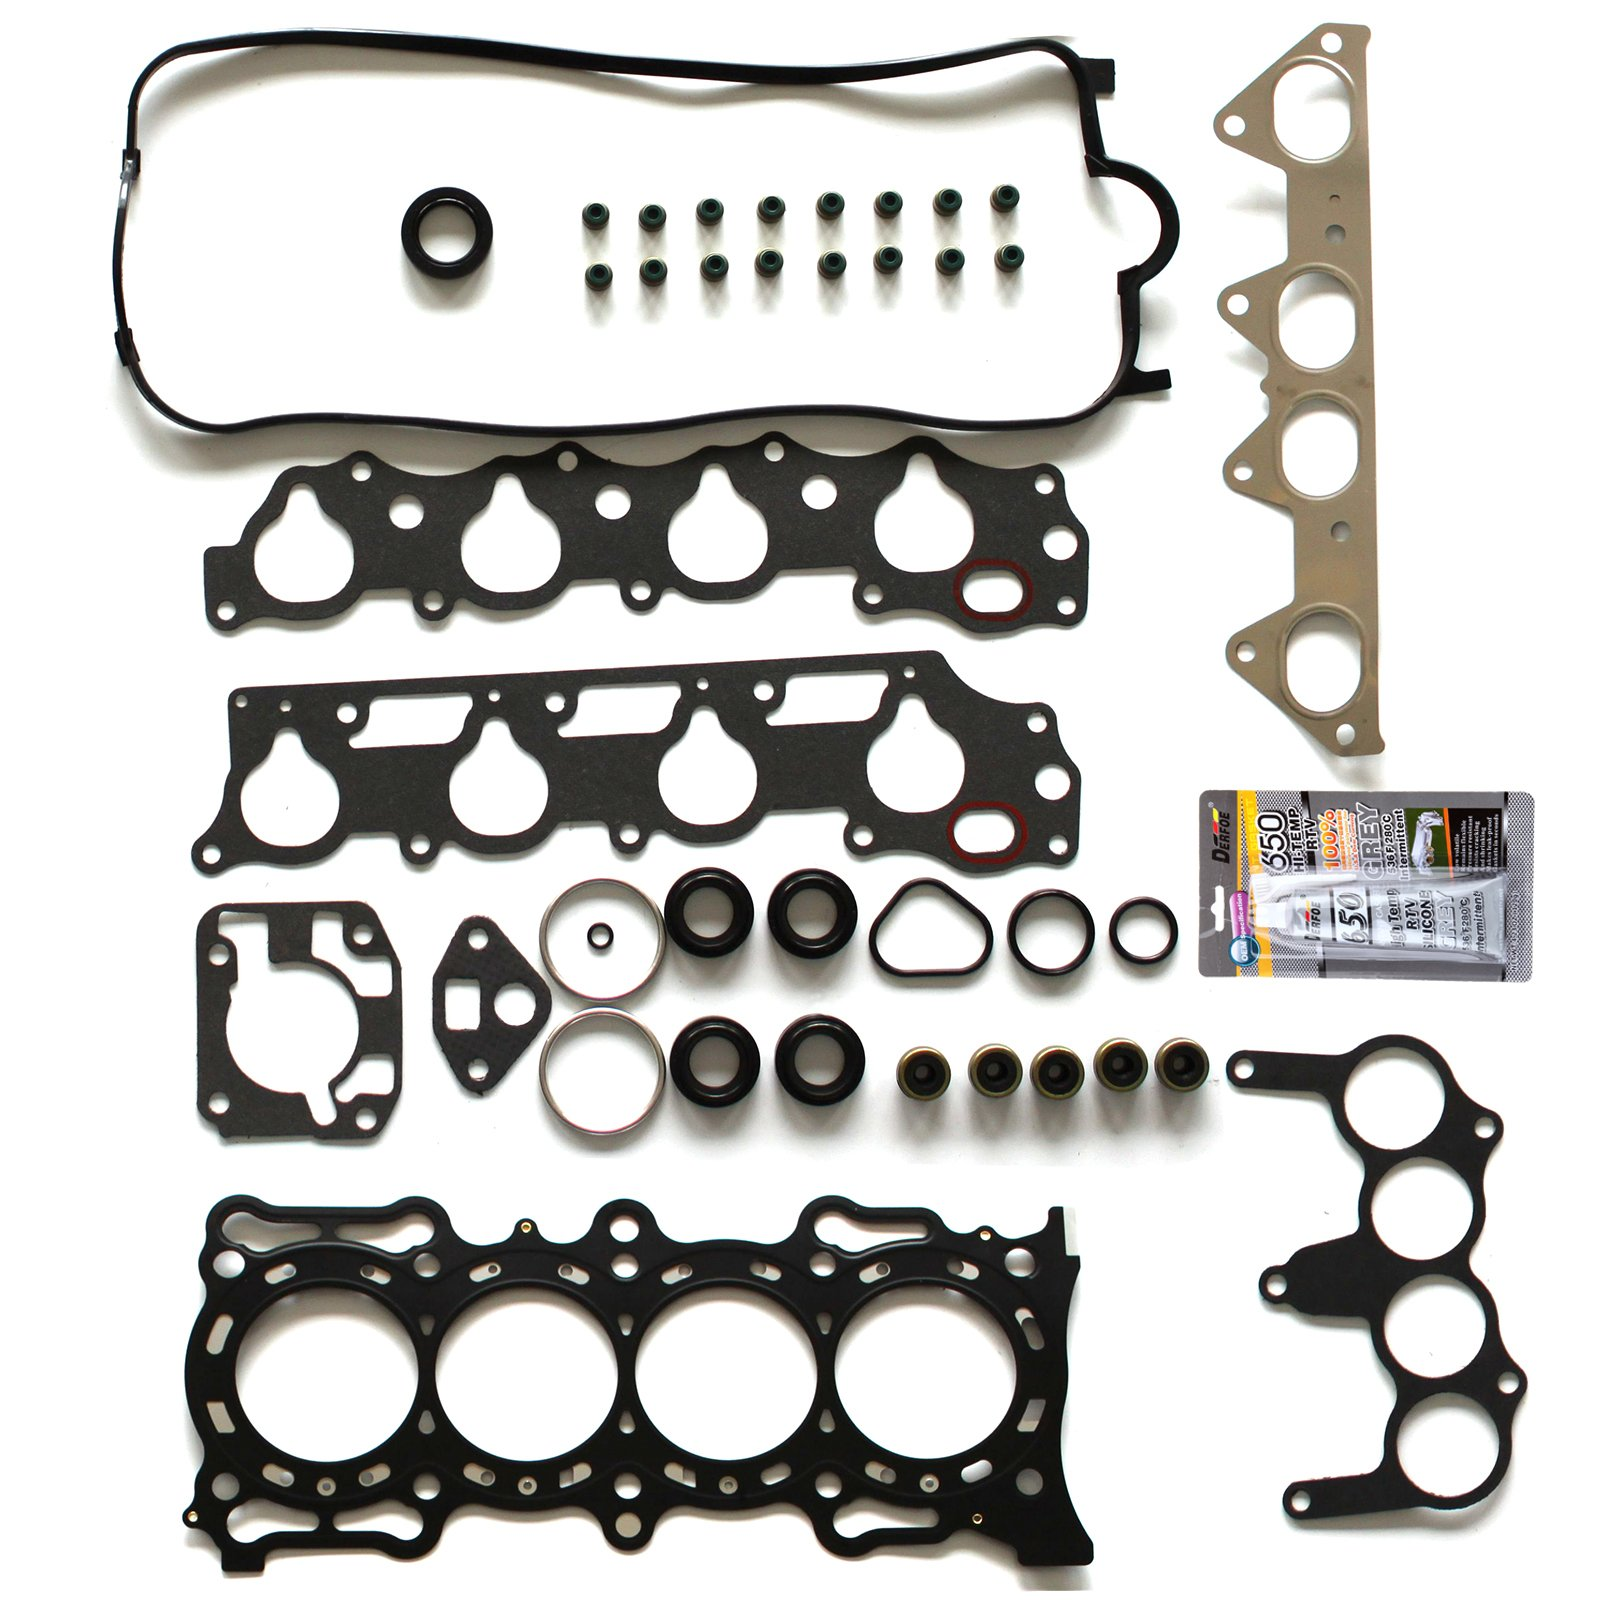 SCITOO Replacement for Head Gasket Kit Fits Honda Accord 2.3L SOHC F23A1 F23A4 F23A5 VTEC1998-2002 Engine Valve Cover Gaskets Kit Set